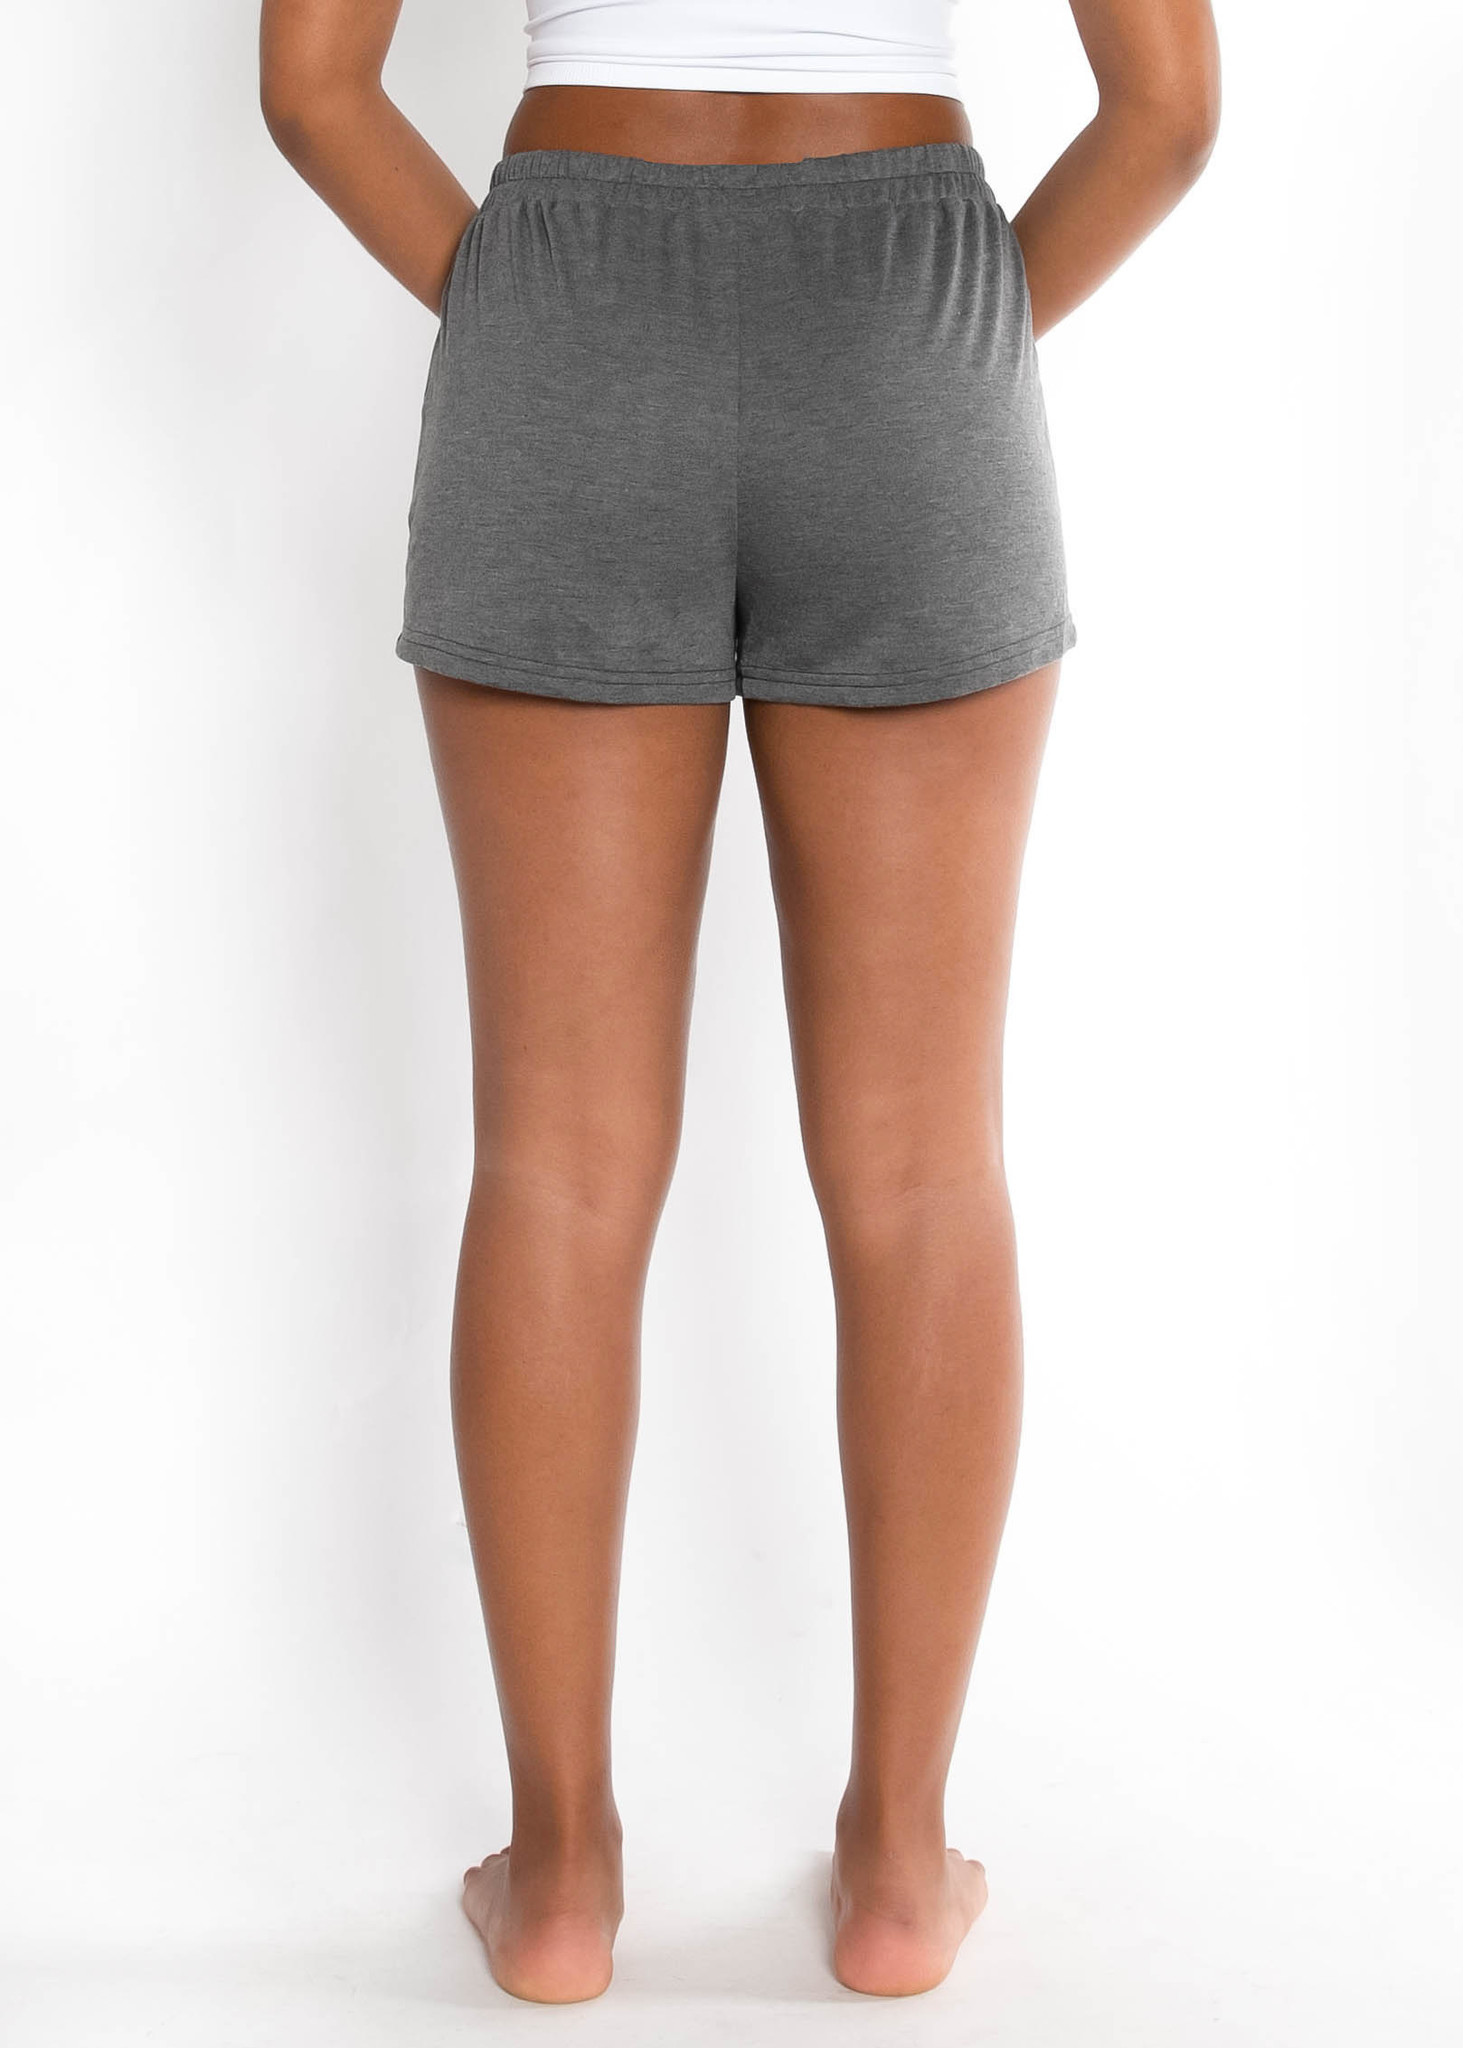 HIT SNOOZE SHORTS - CHARCOAL